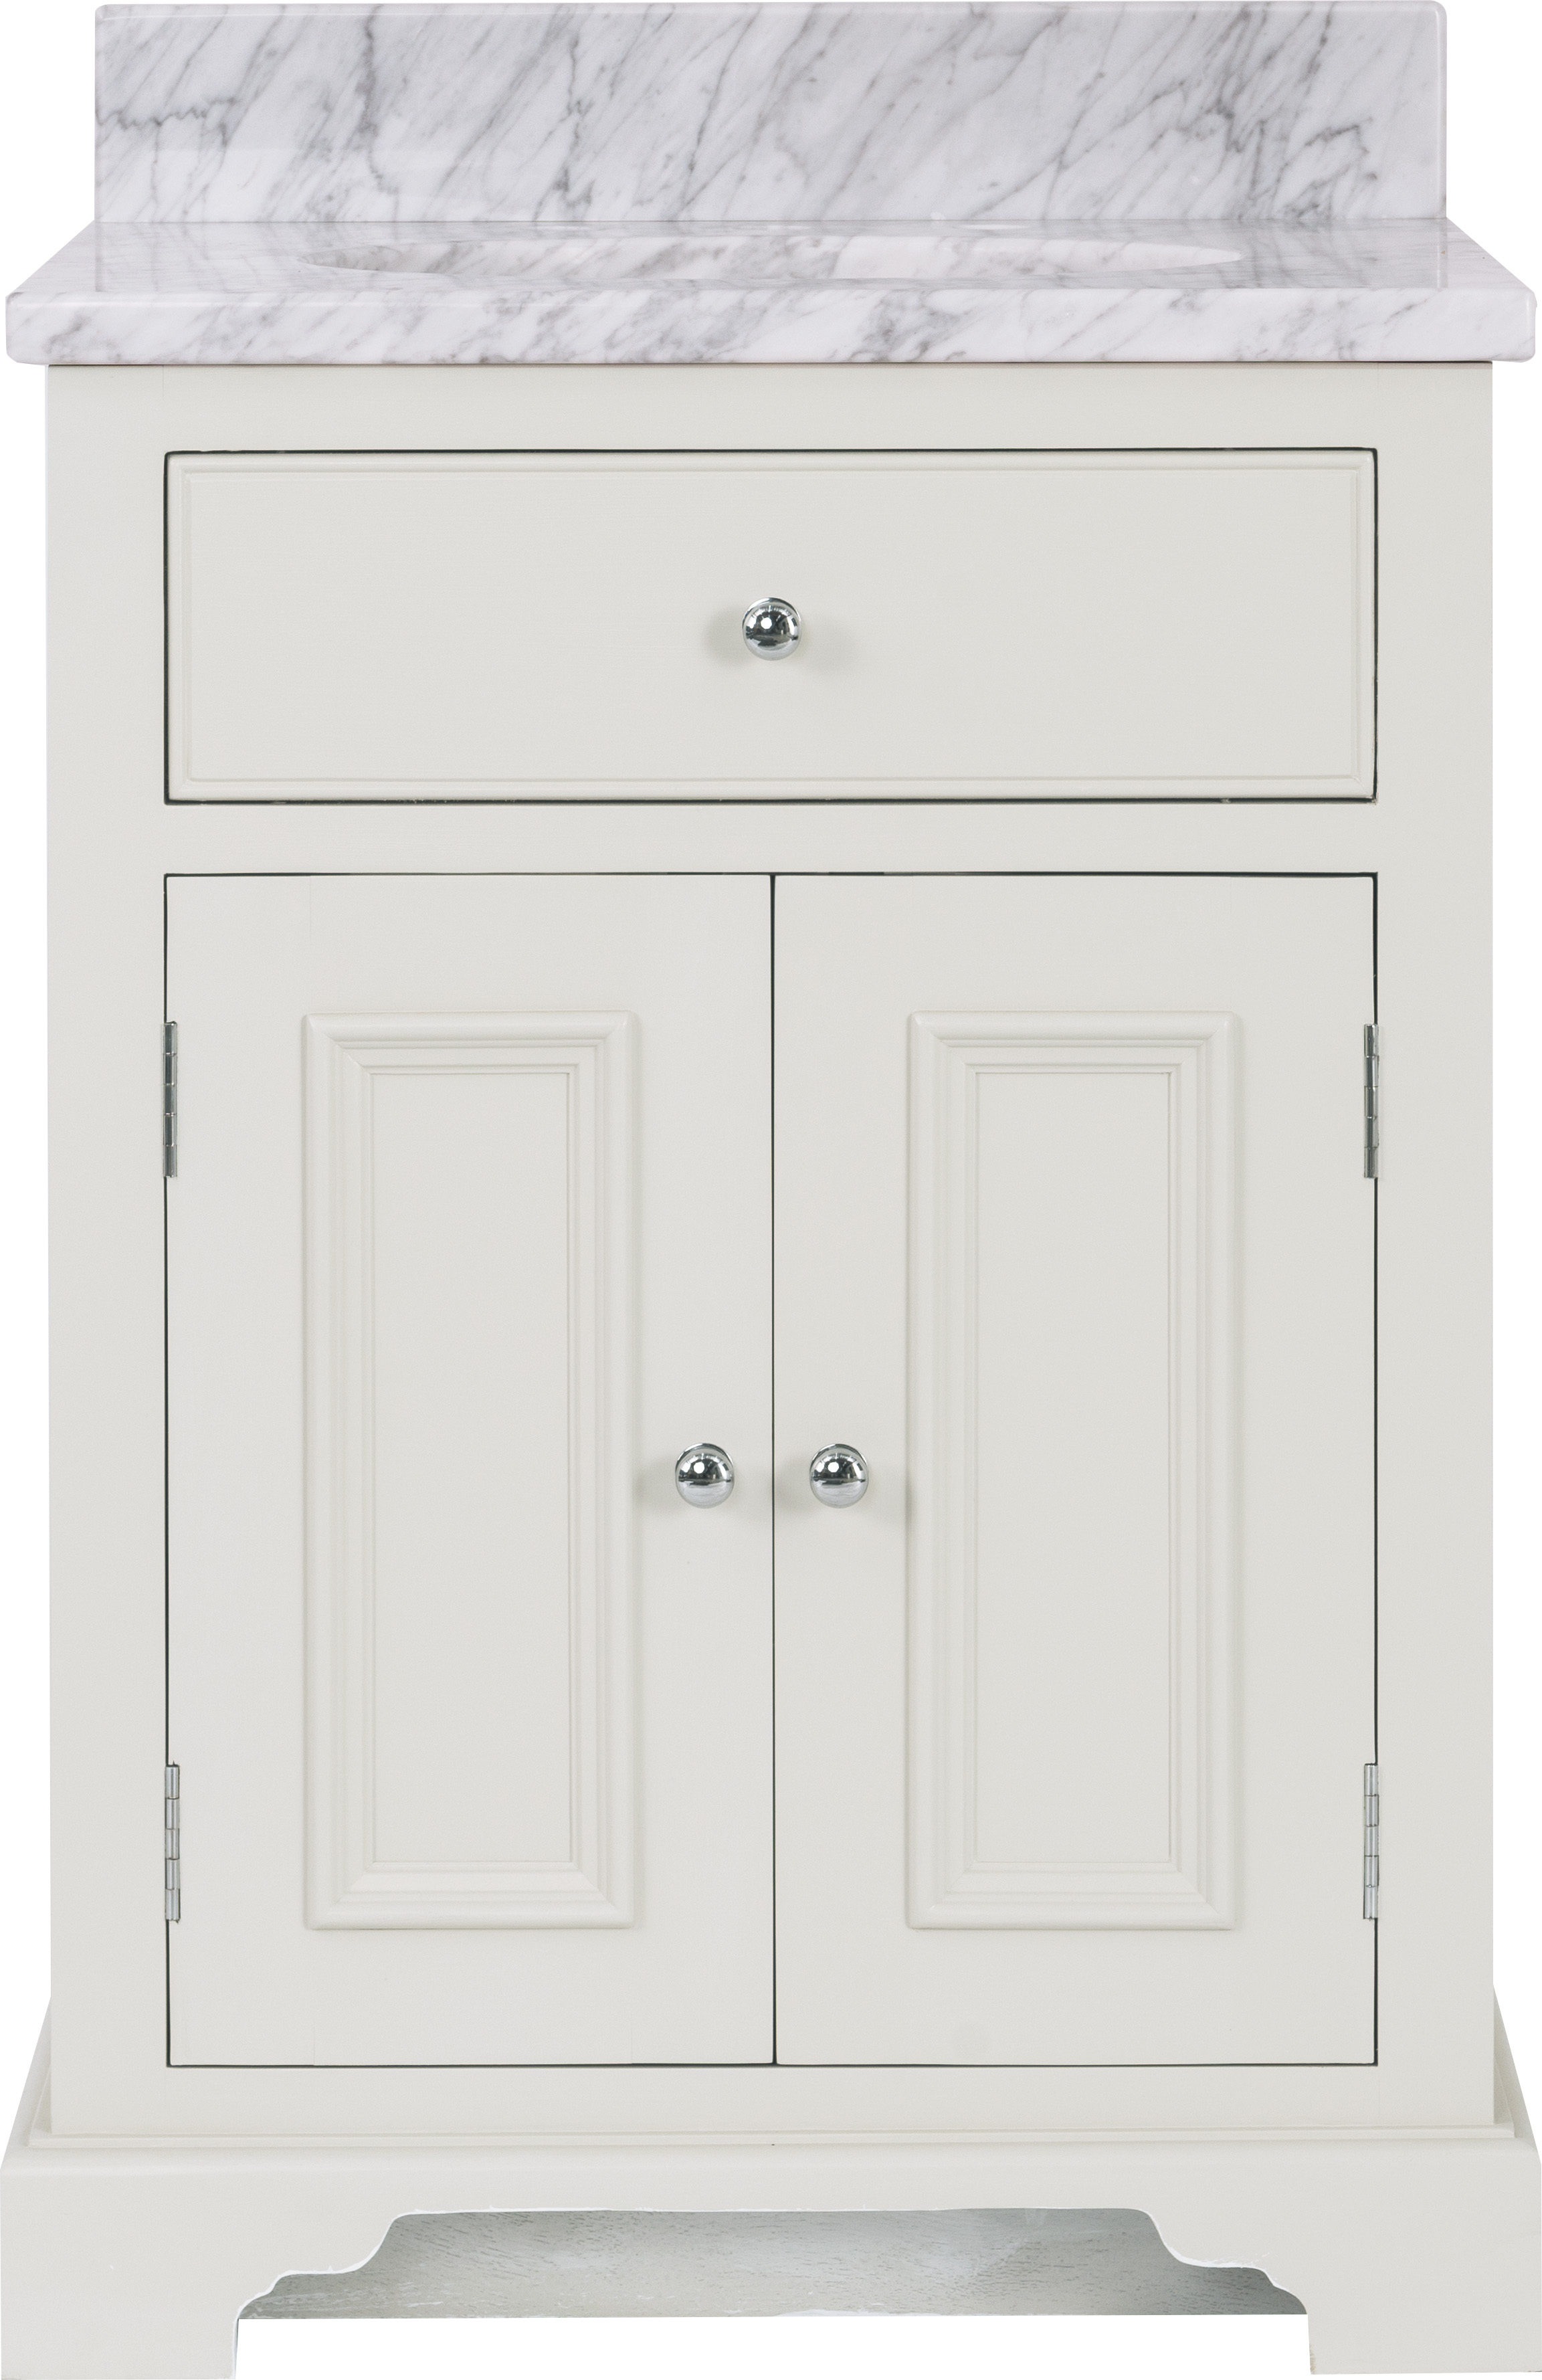 Chichester Undermount Washstand